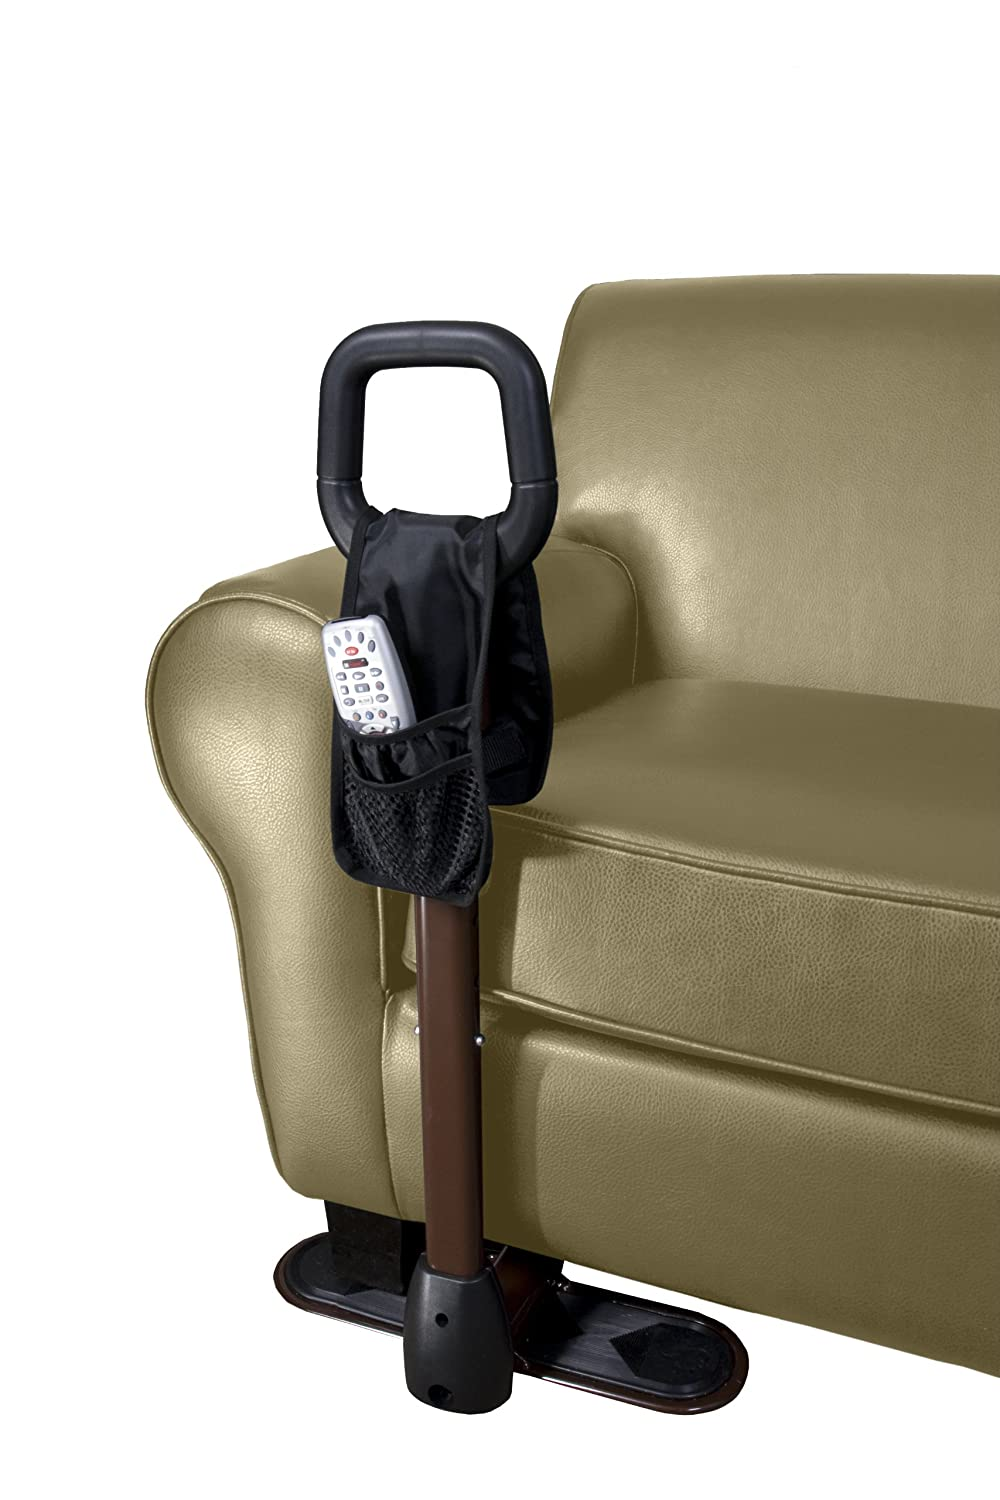 Amazon.com: Stander CouchCane - Ergonomic Safety Support Handle + ...